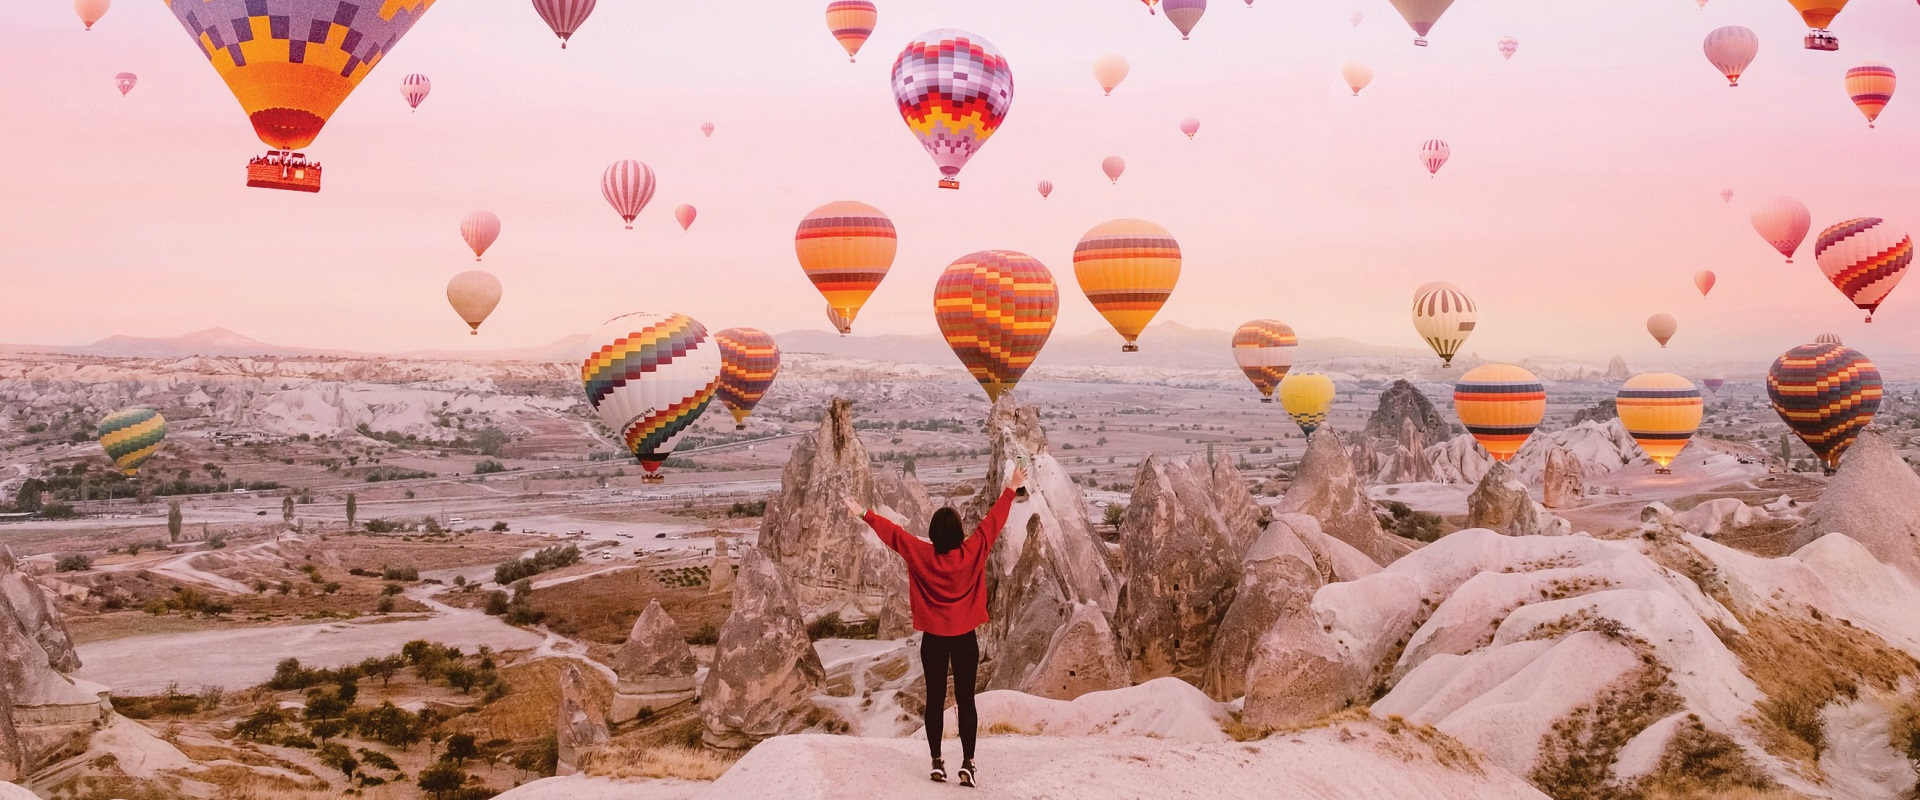 Cappadocia, Turkey. Image: Getty